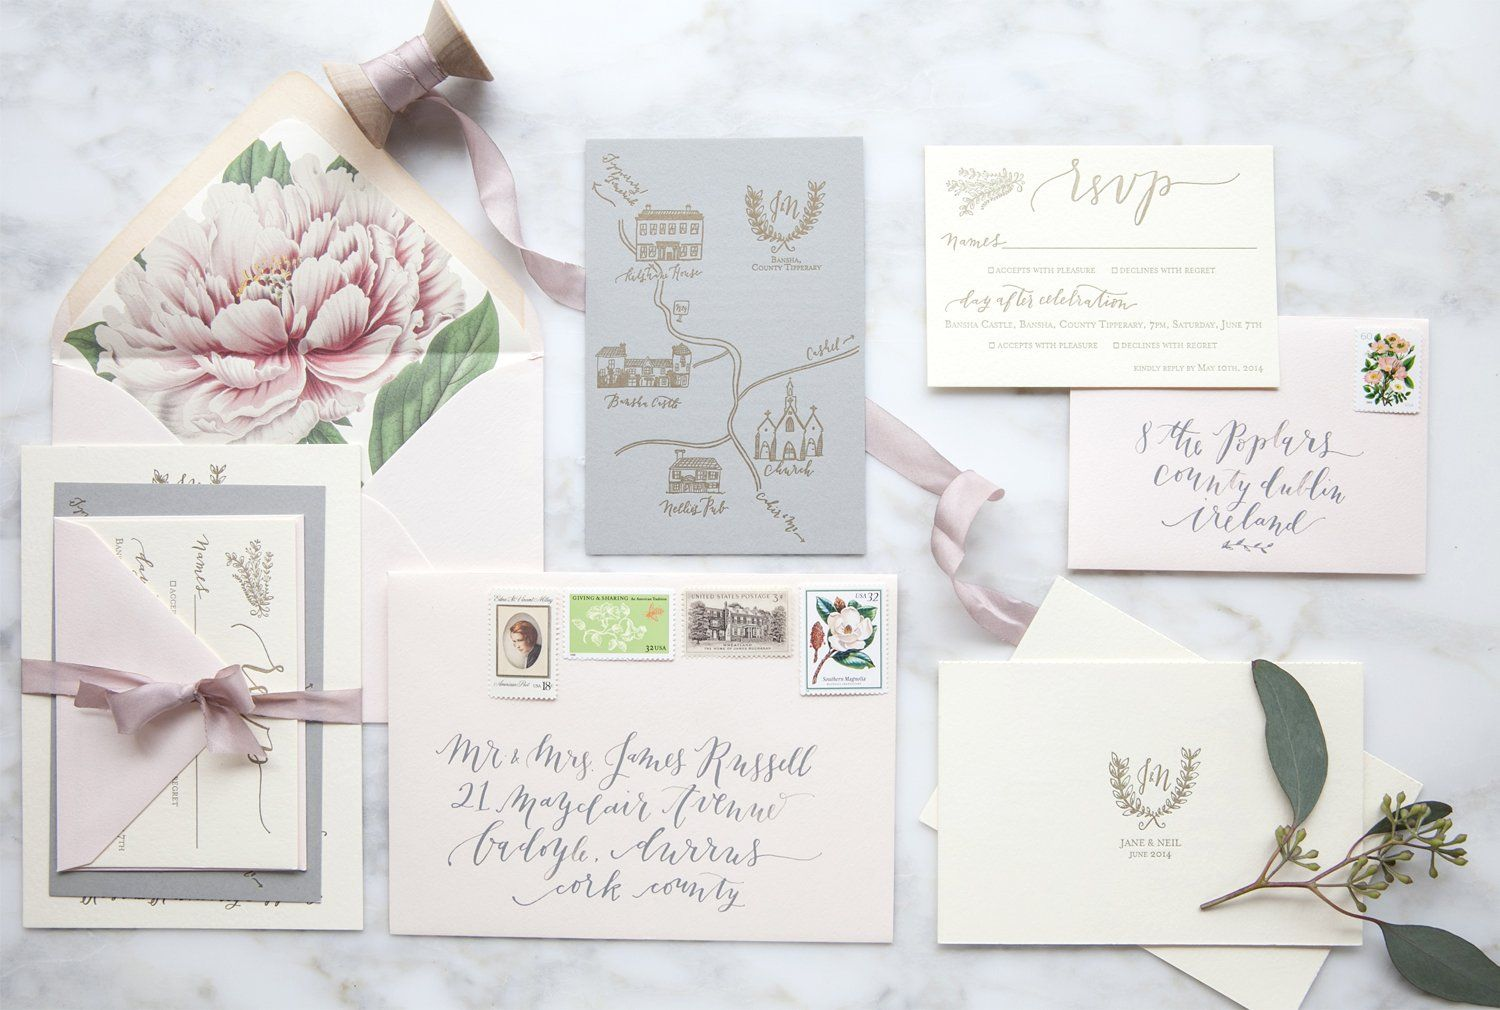 This invitation syle but with our wreathinitial logo at the top